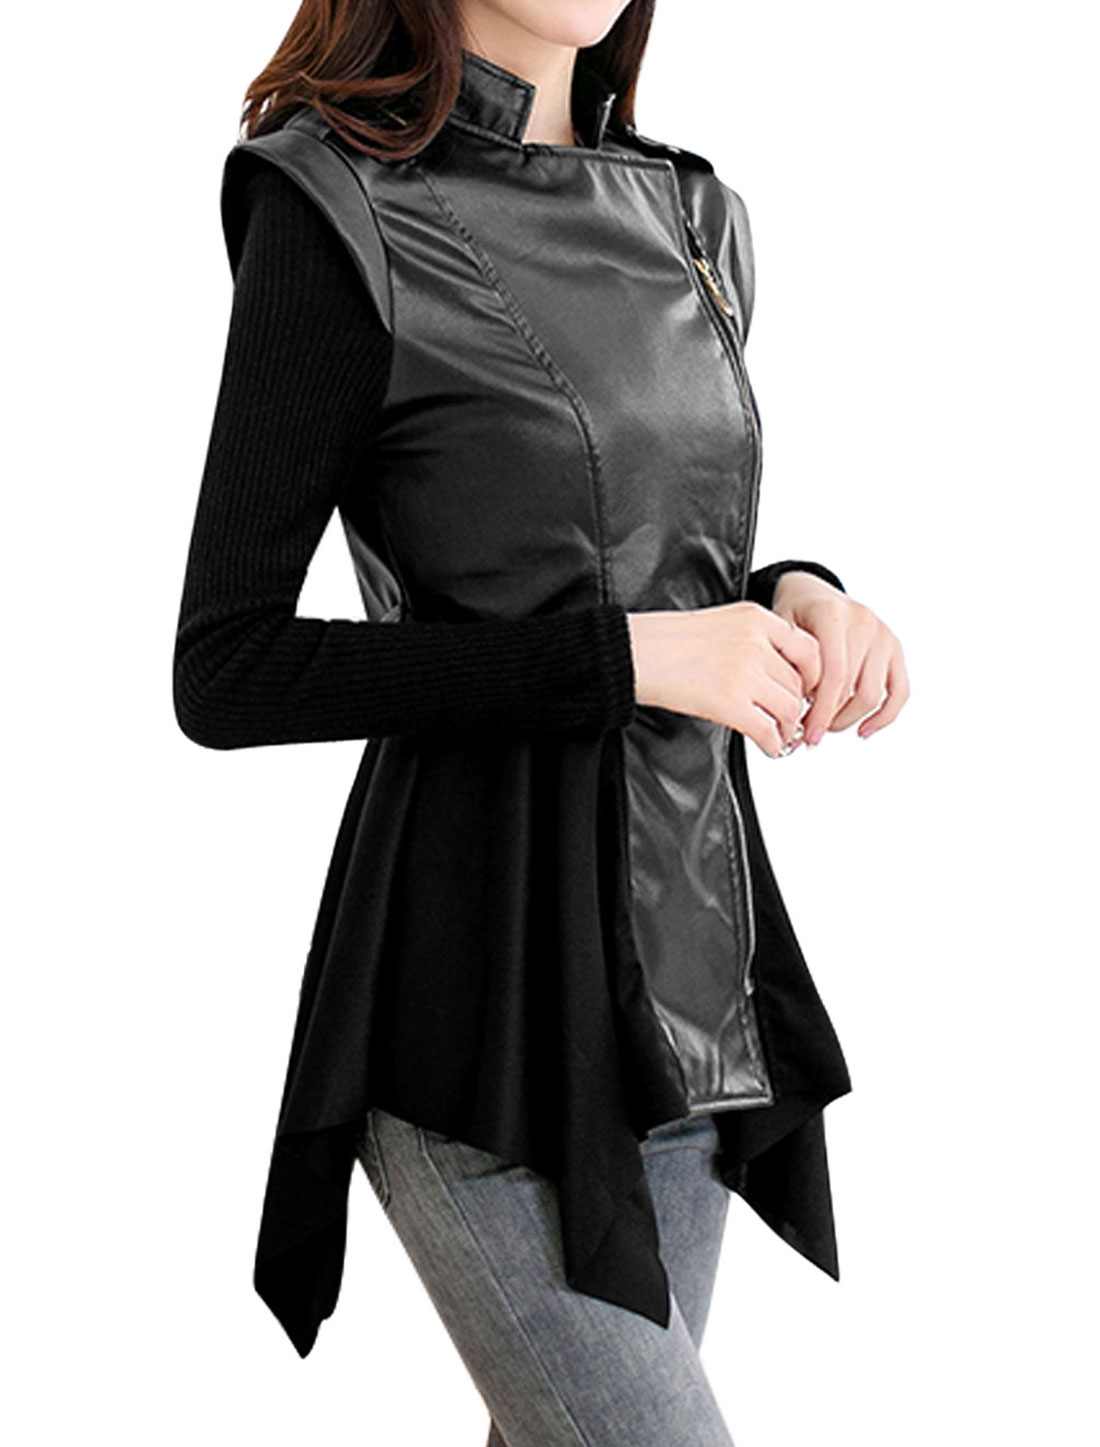 Ladies Black Stand Collar Long Sleeves Zippered Front Splice Casual Jacket S